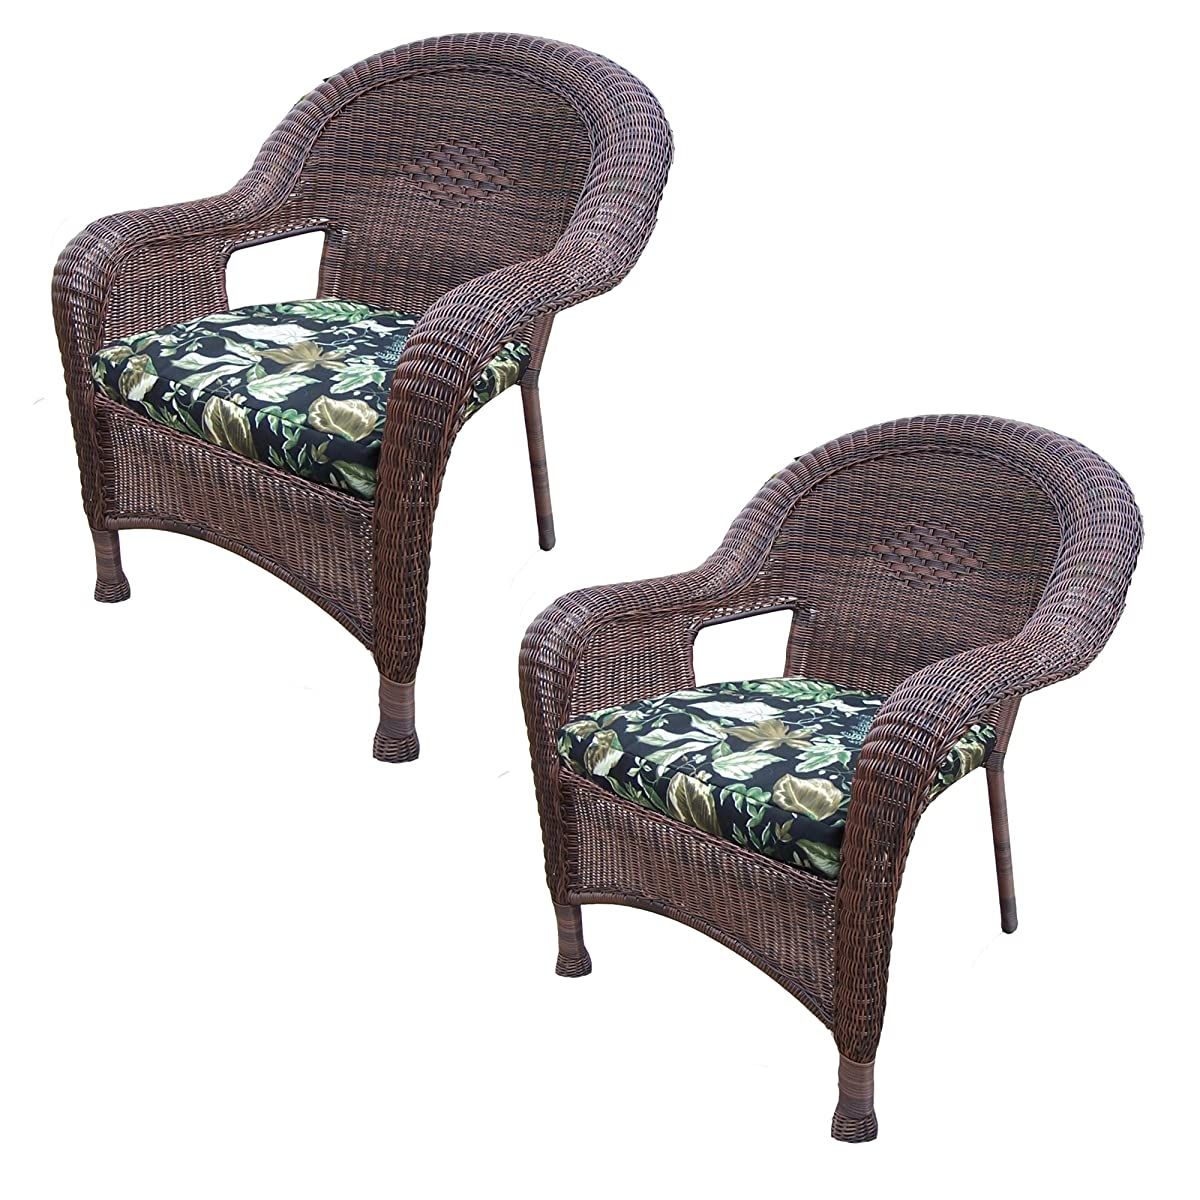 Oakland Living Resin Wicker Arm Chair with Cushion 90030-C-BF-CF Pack of 2